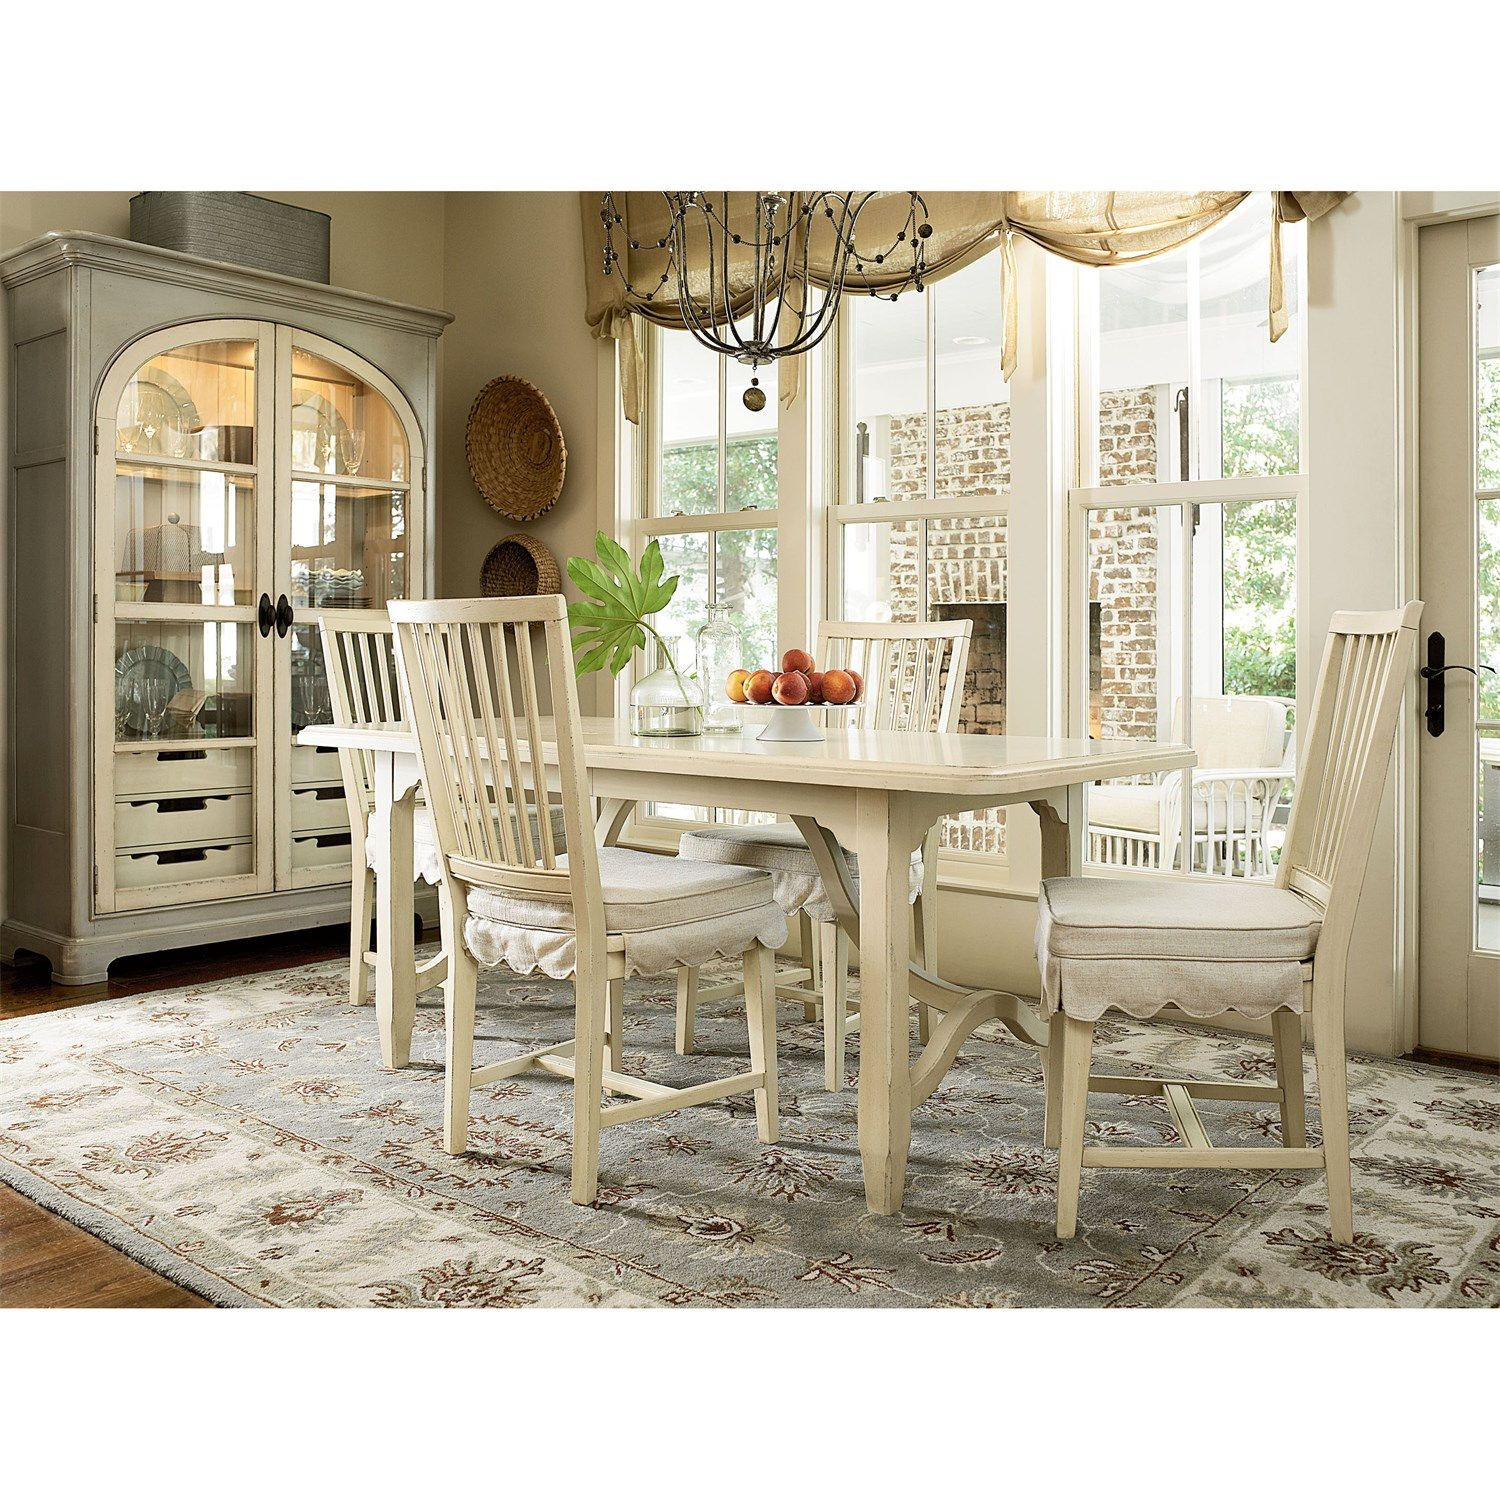 Paula Deen Furniture 393676 River House Paula\'s Best Dishes Pantry ...